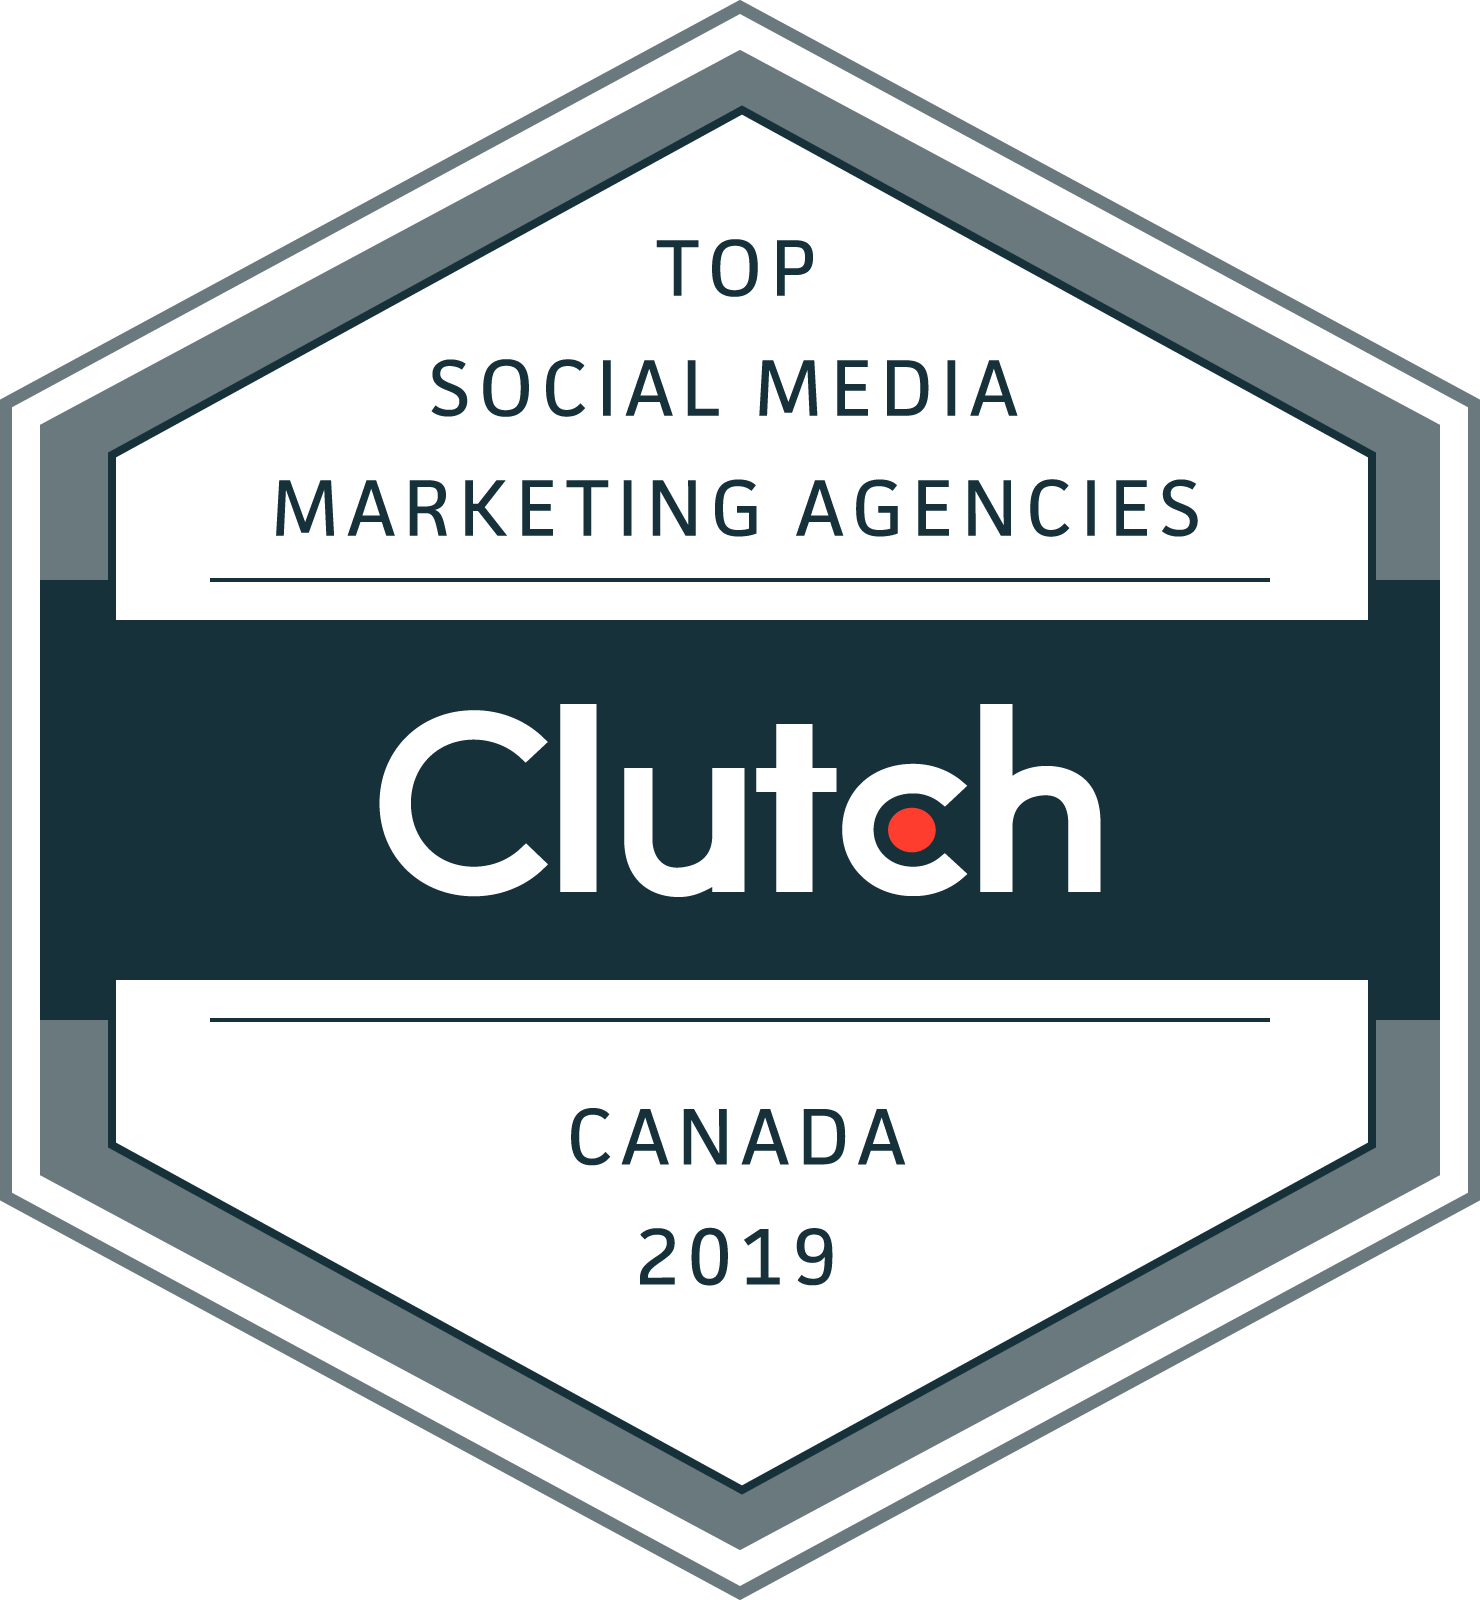 Social_Media_Marketing_Agencies_Canada_2019.png